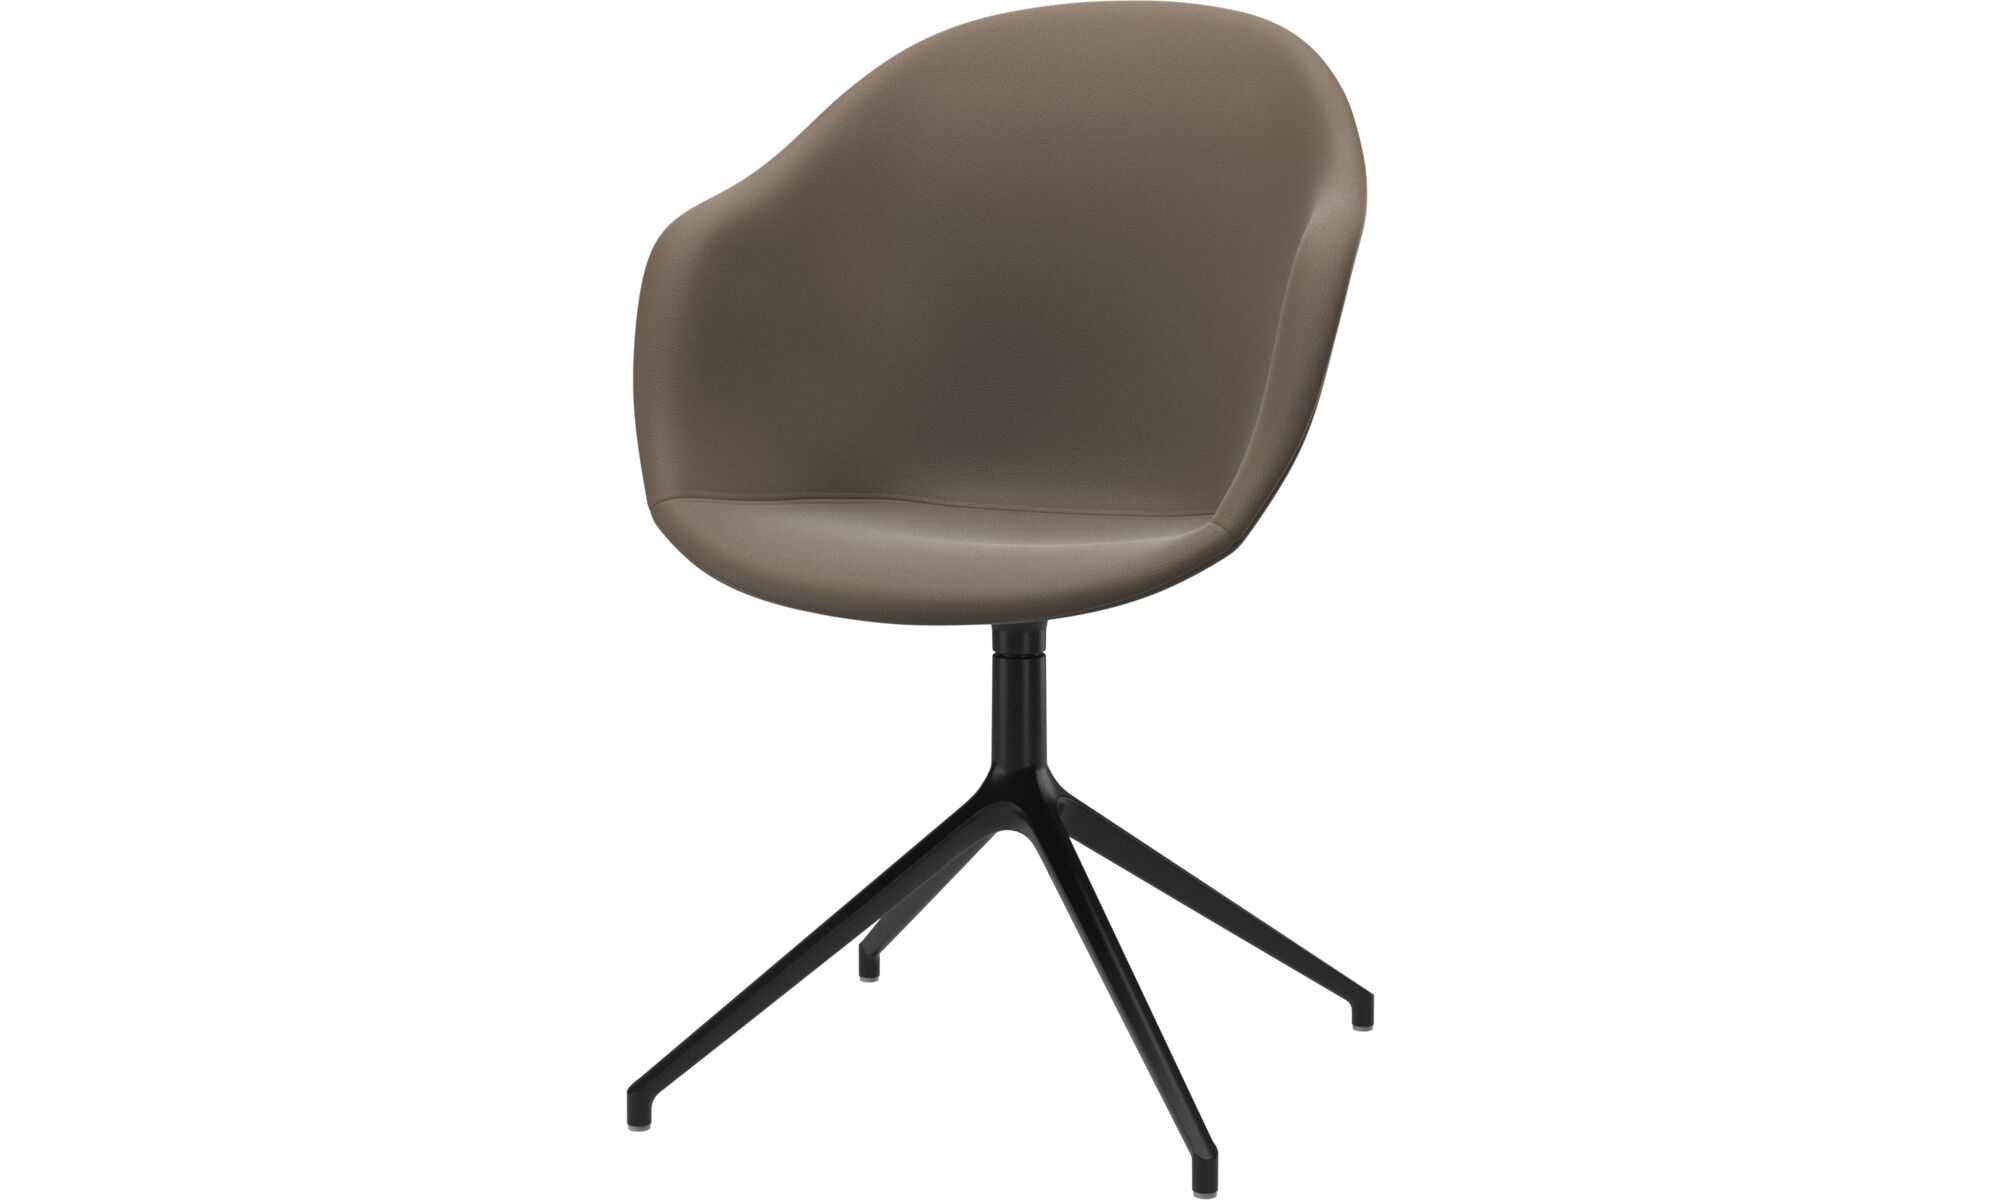 【Chair】Adelaide chair 10%off